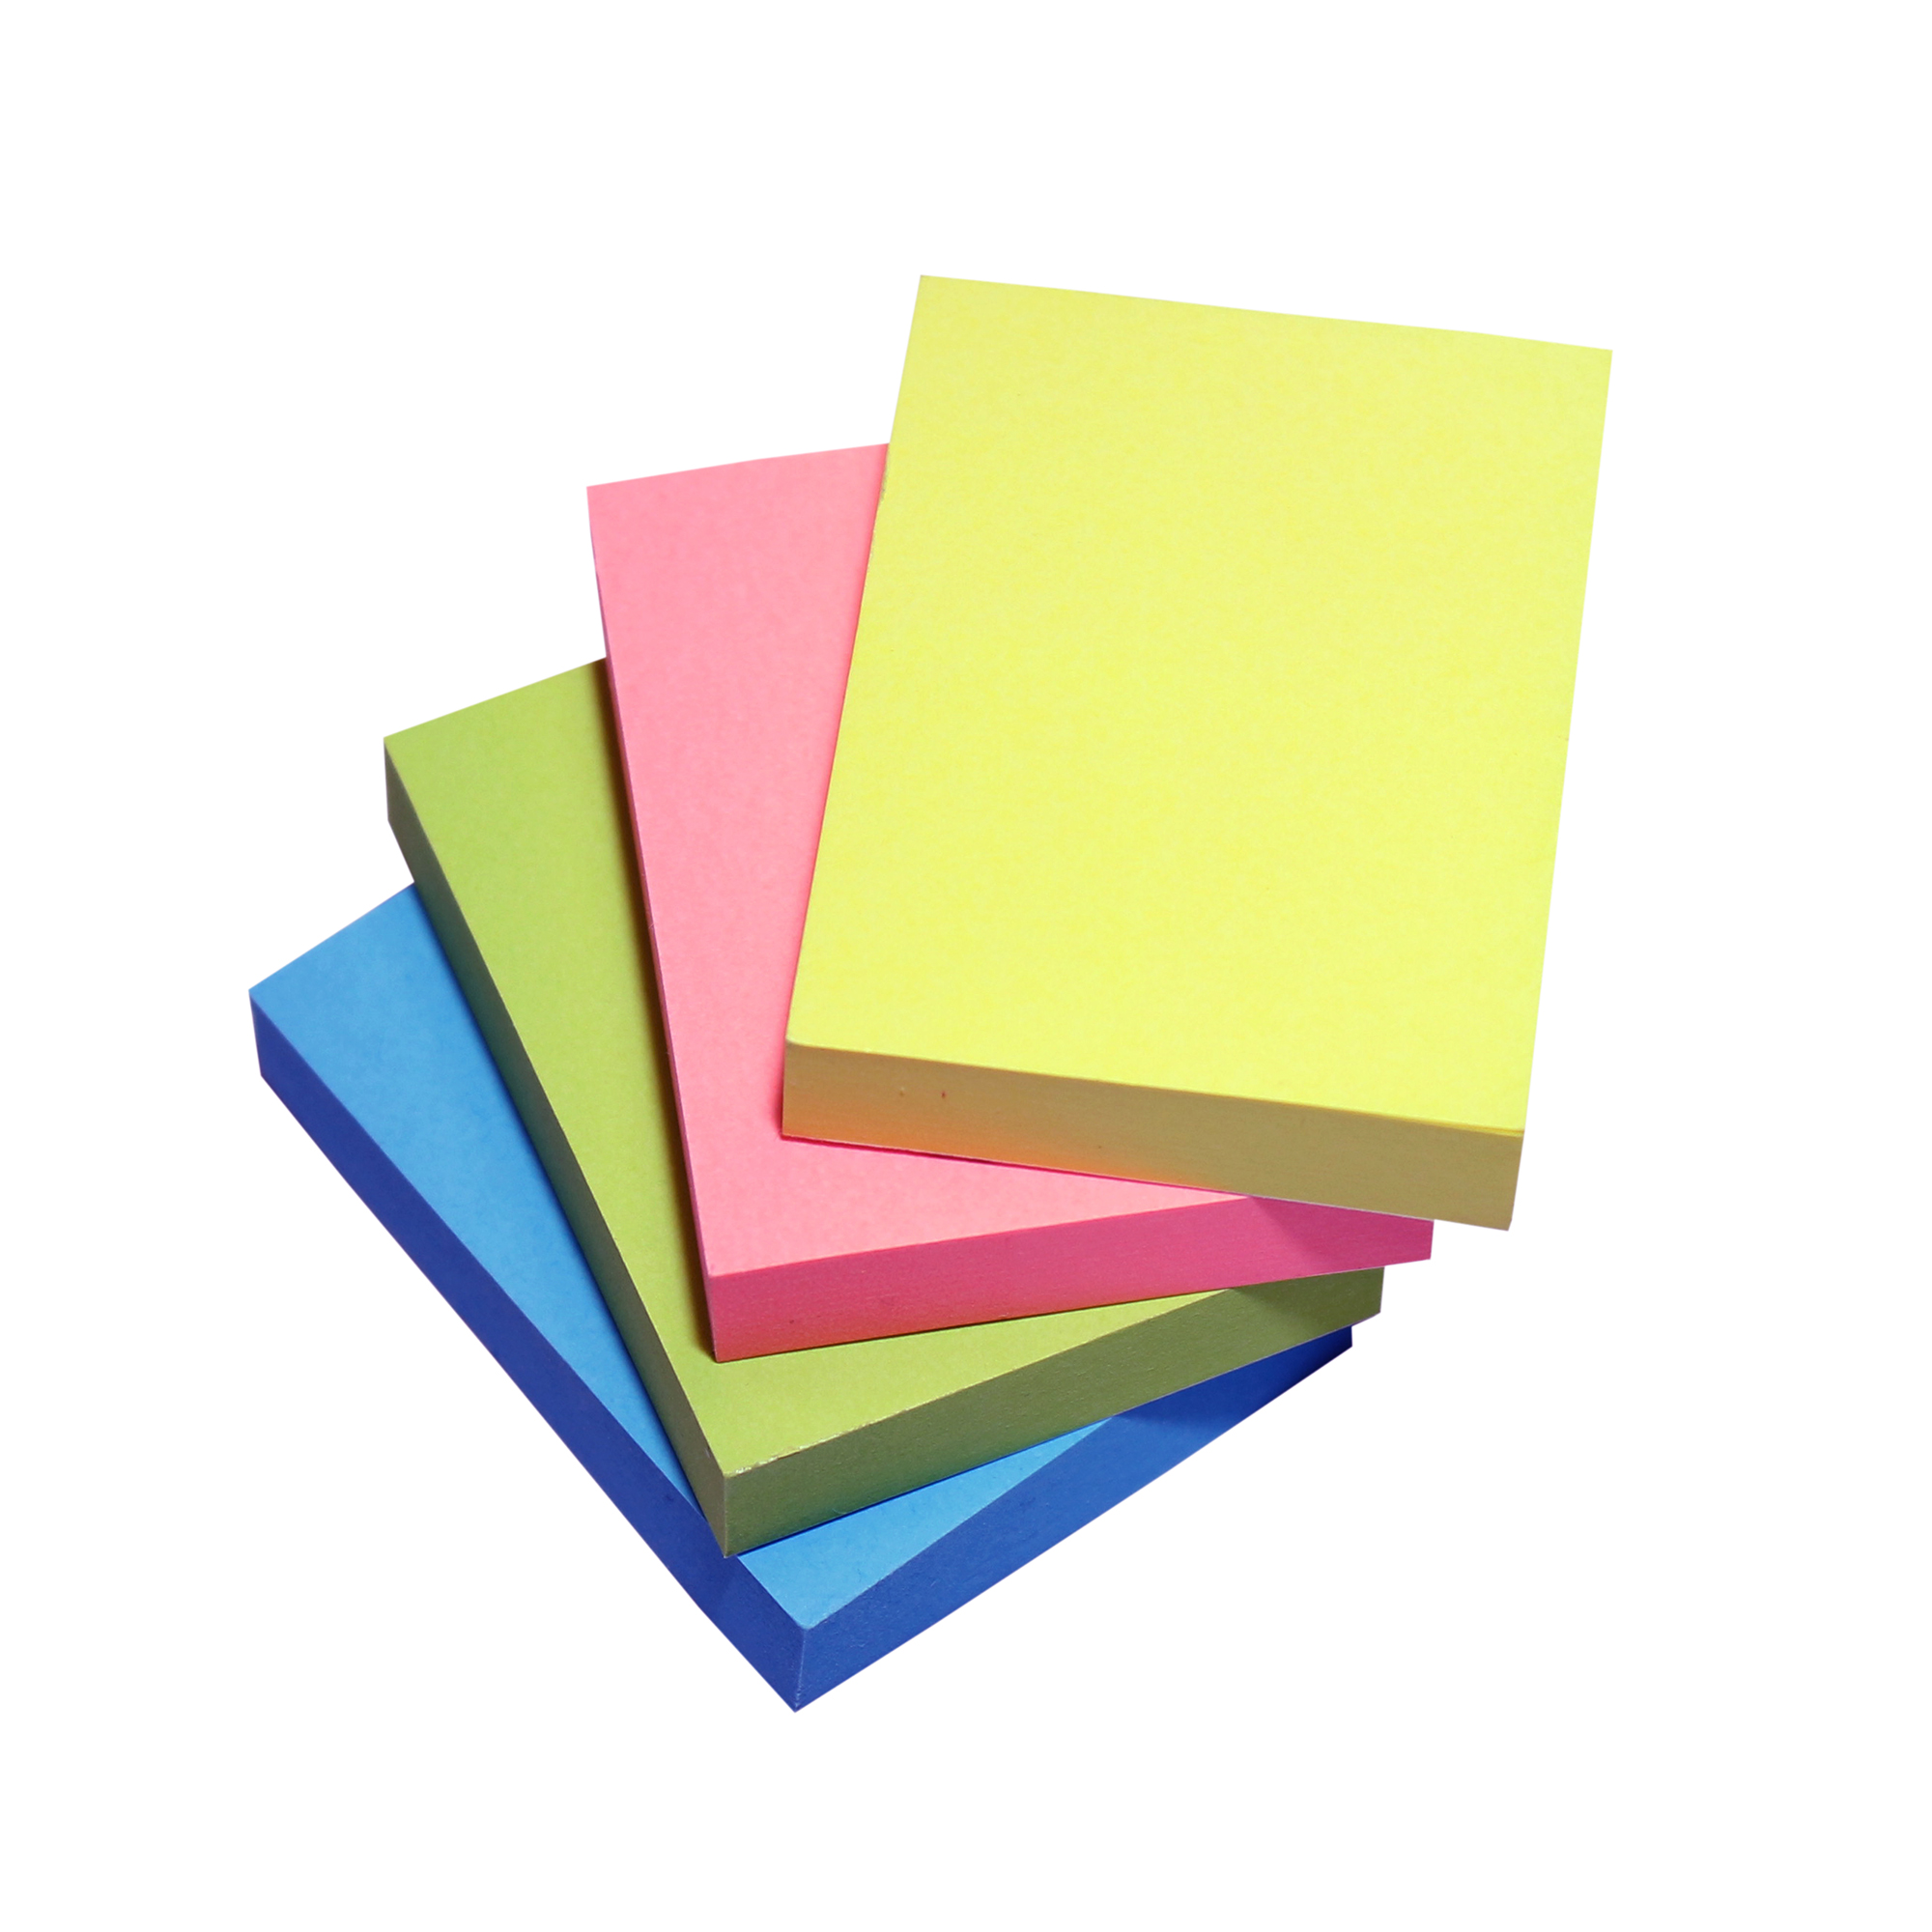 Self adhesive note paper 5 Star Respositionable Notes 70gsm 4 Neon Ass Colours Yellow Pink Blue Green 100 Sheets 38x51mm Pack 12